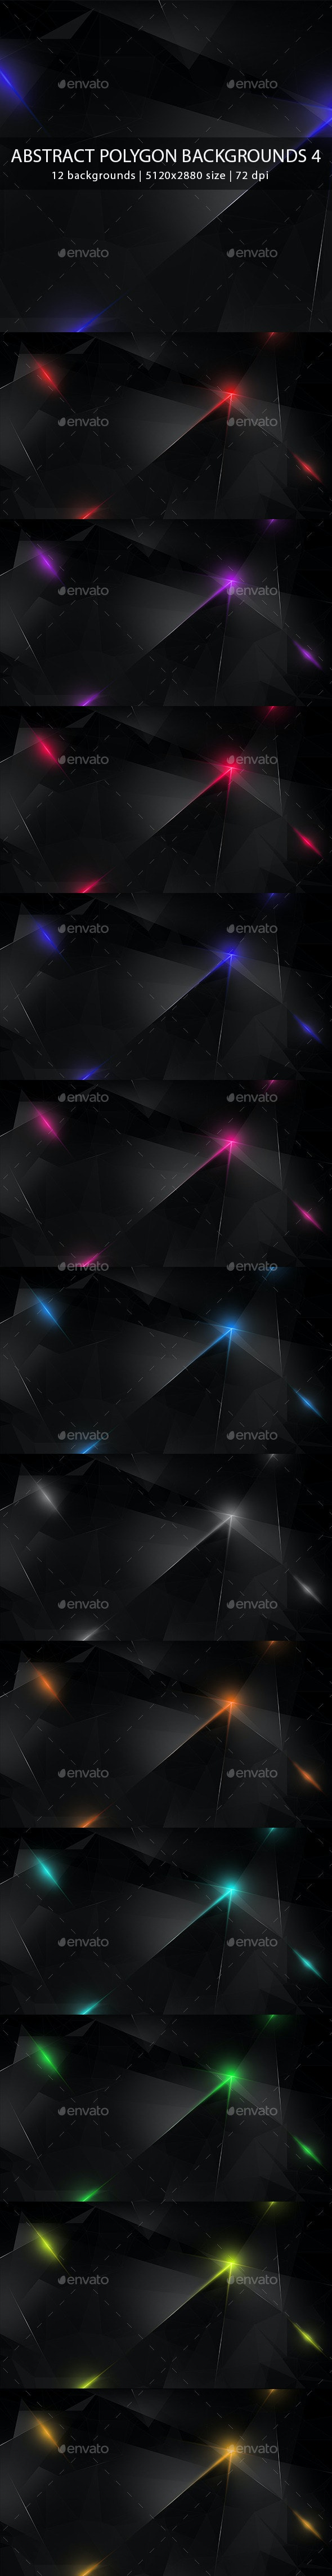 Abstract Polygon Backgrounds 4 - Abstract Backgrounds